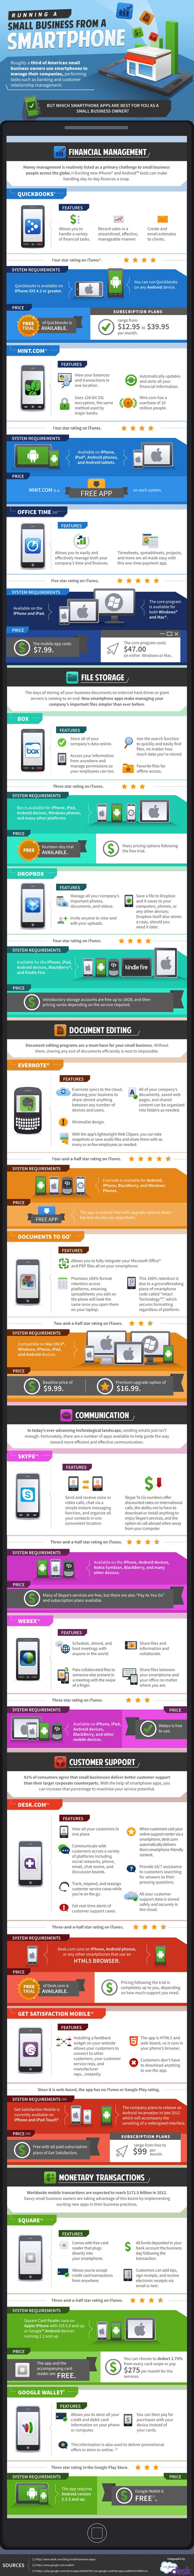 Running a small business from a smart phone - #infographic                ----------------------------------------------------------  Let's Engage more on Twitter: @Navido Kamali  |    Let's Connect on LinkedIn: au.linkedin.com/in/navidsaadati